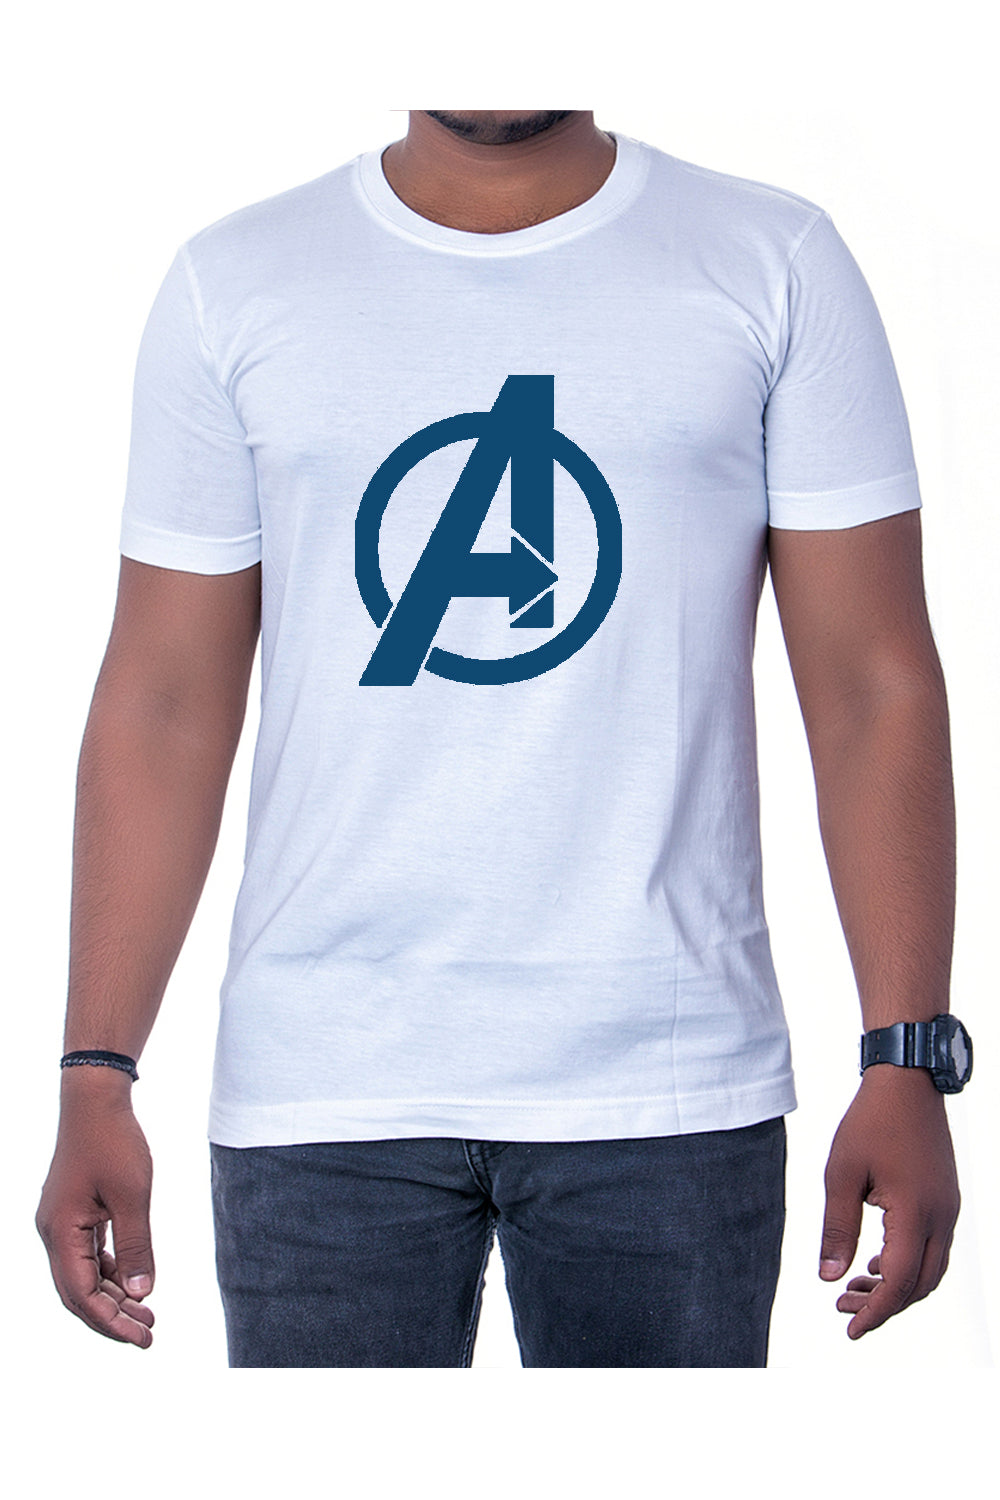 Cotton White Marvel Avengers Mens Printed Round Neck Short Sleeves T-Shirt - Bestfit Sportswear